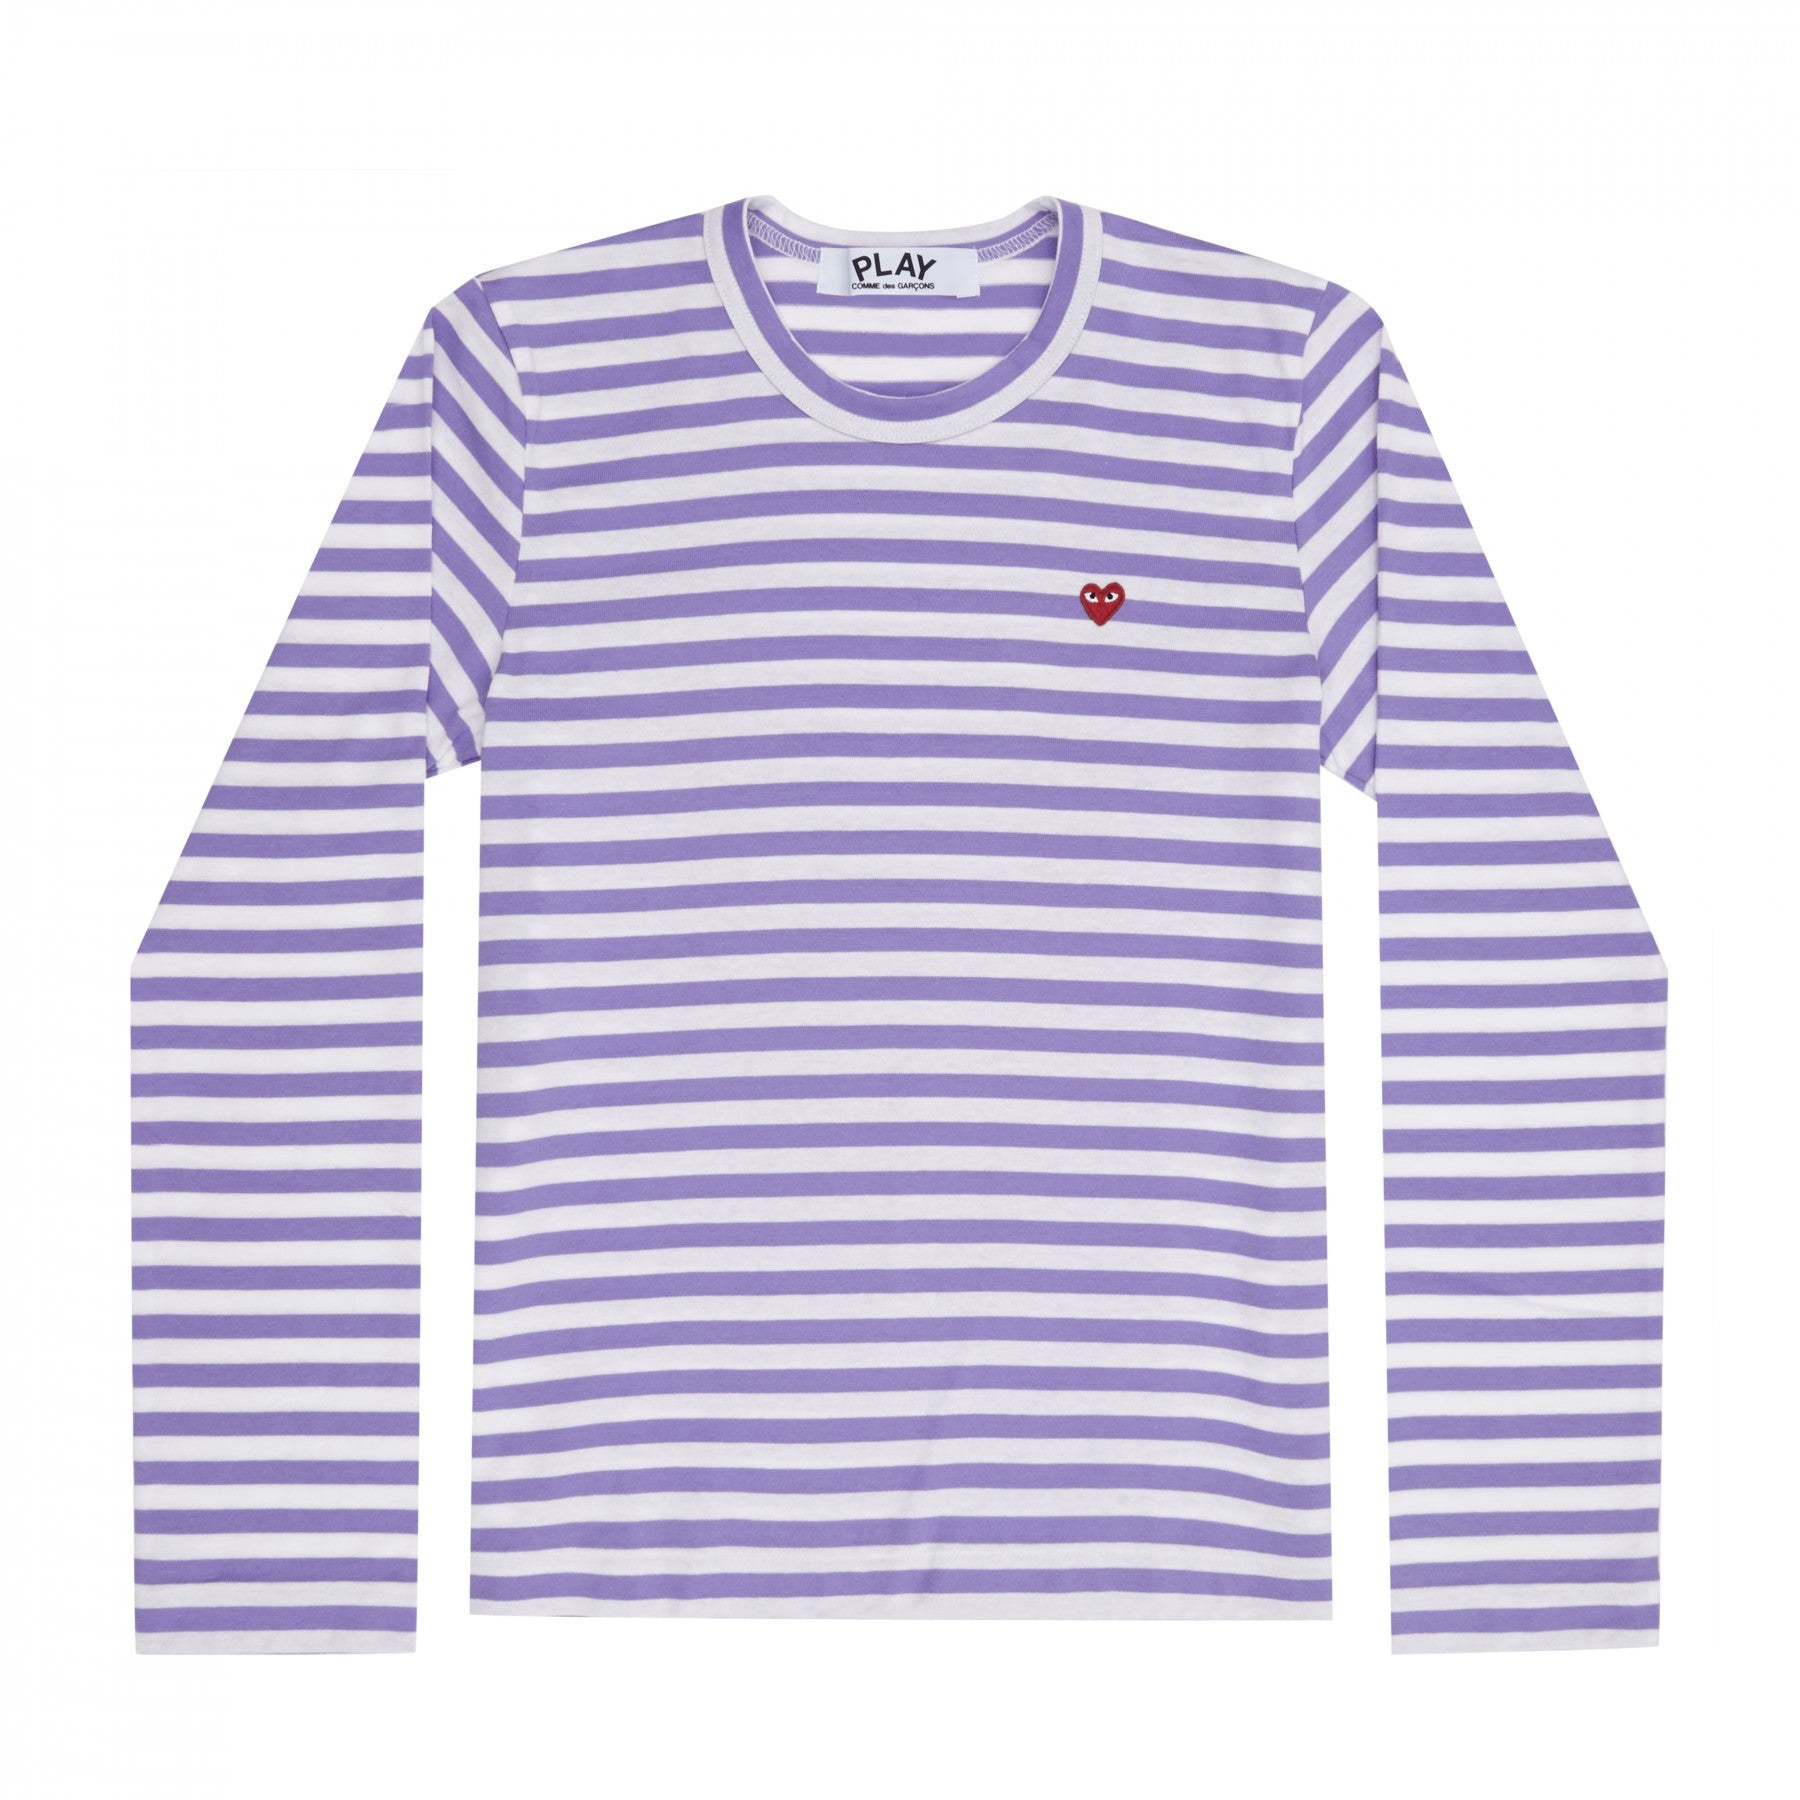 Pink & White Striped T-shirt